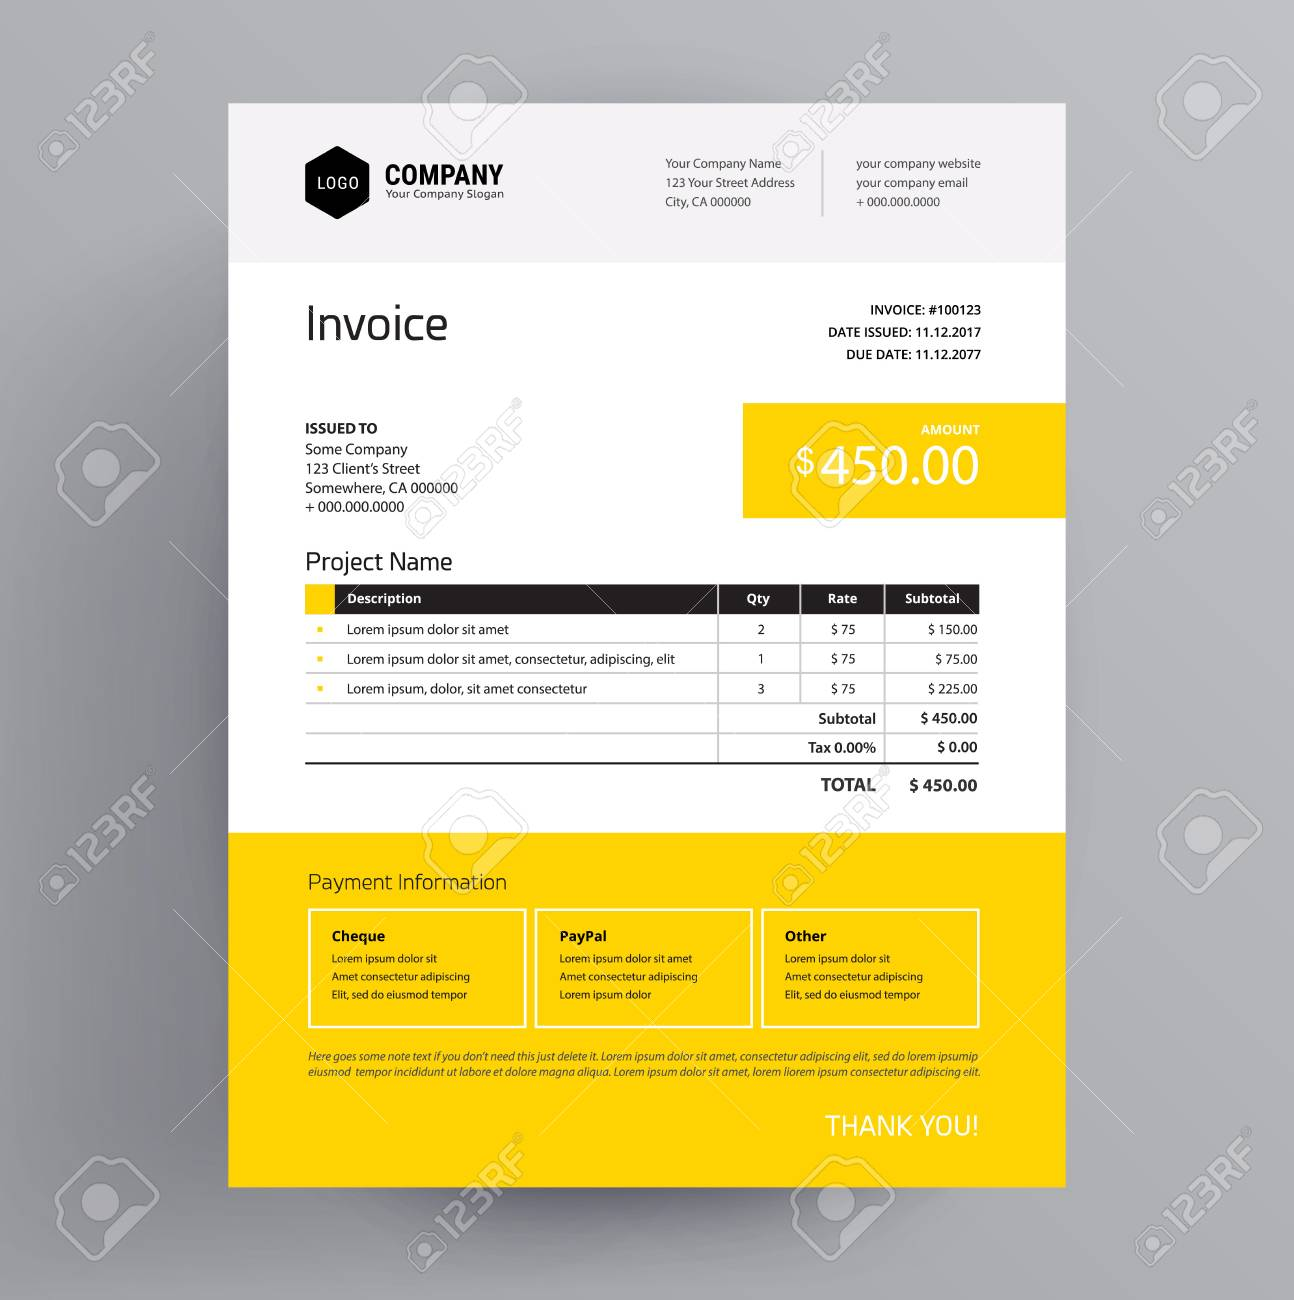 Invoice template design in yellow color us letter company invoice template design in yellow color us letter company bill creative business template thecheapjerseys Image collections